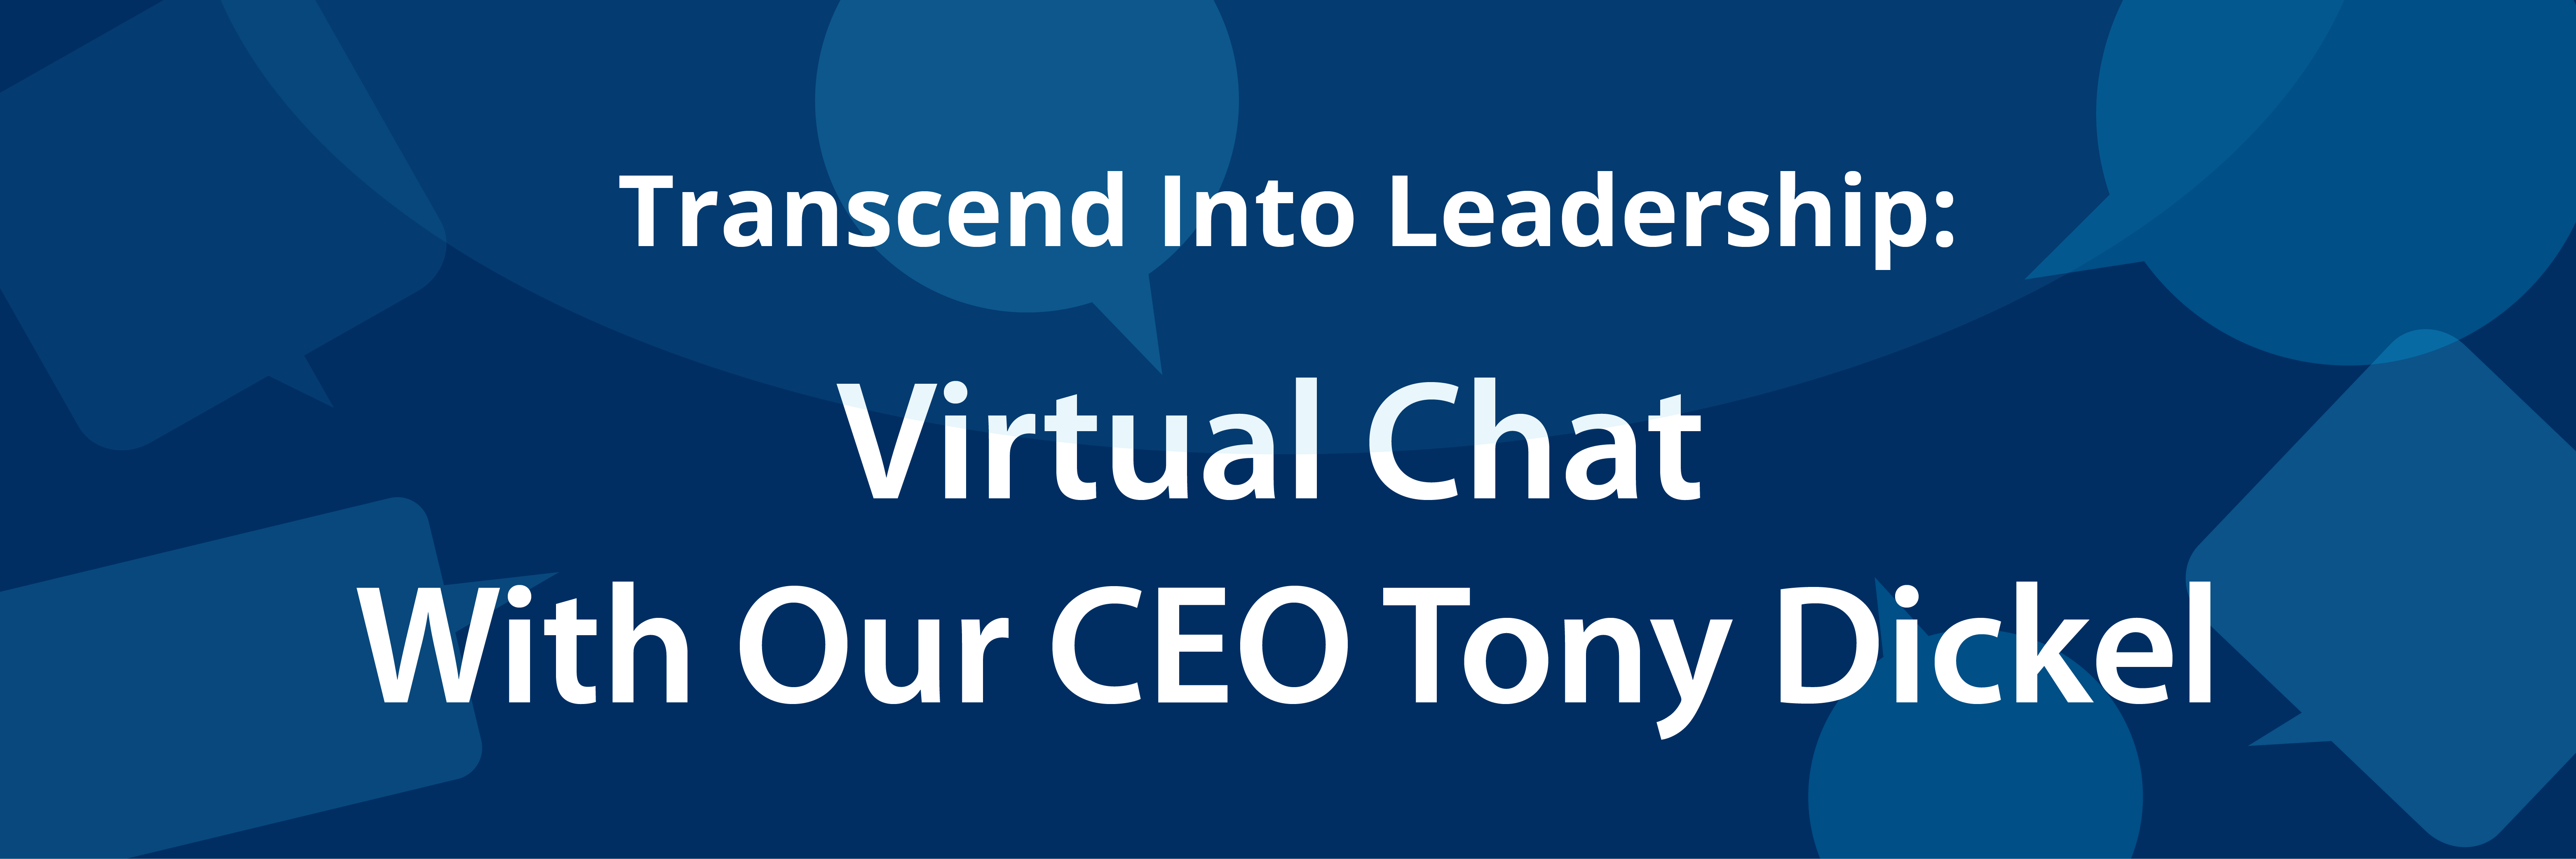 transcend into leadership virtual chat with Our CEO Tony Dickel